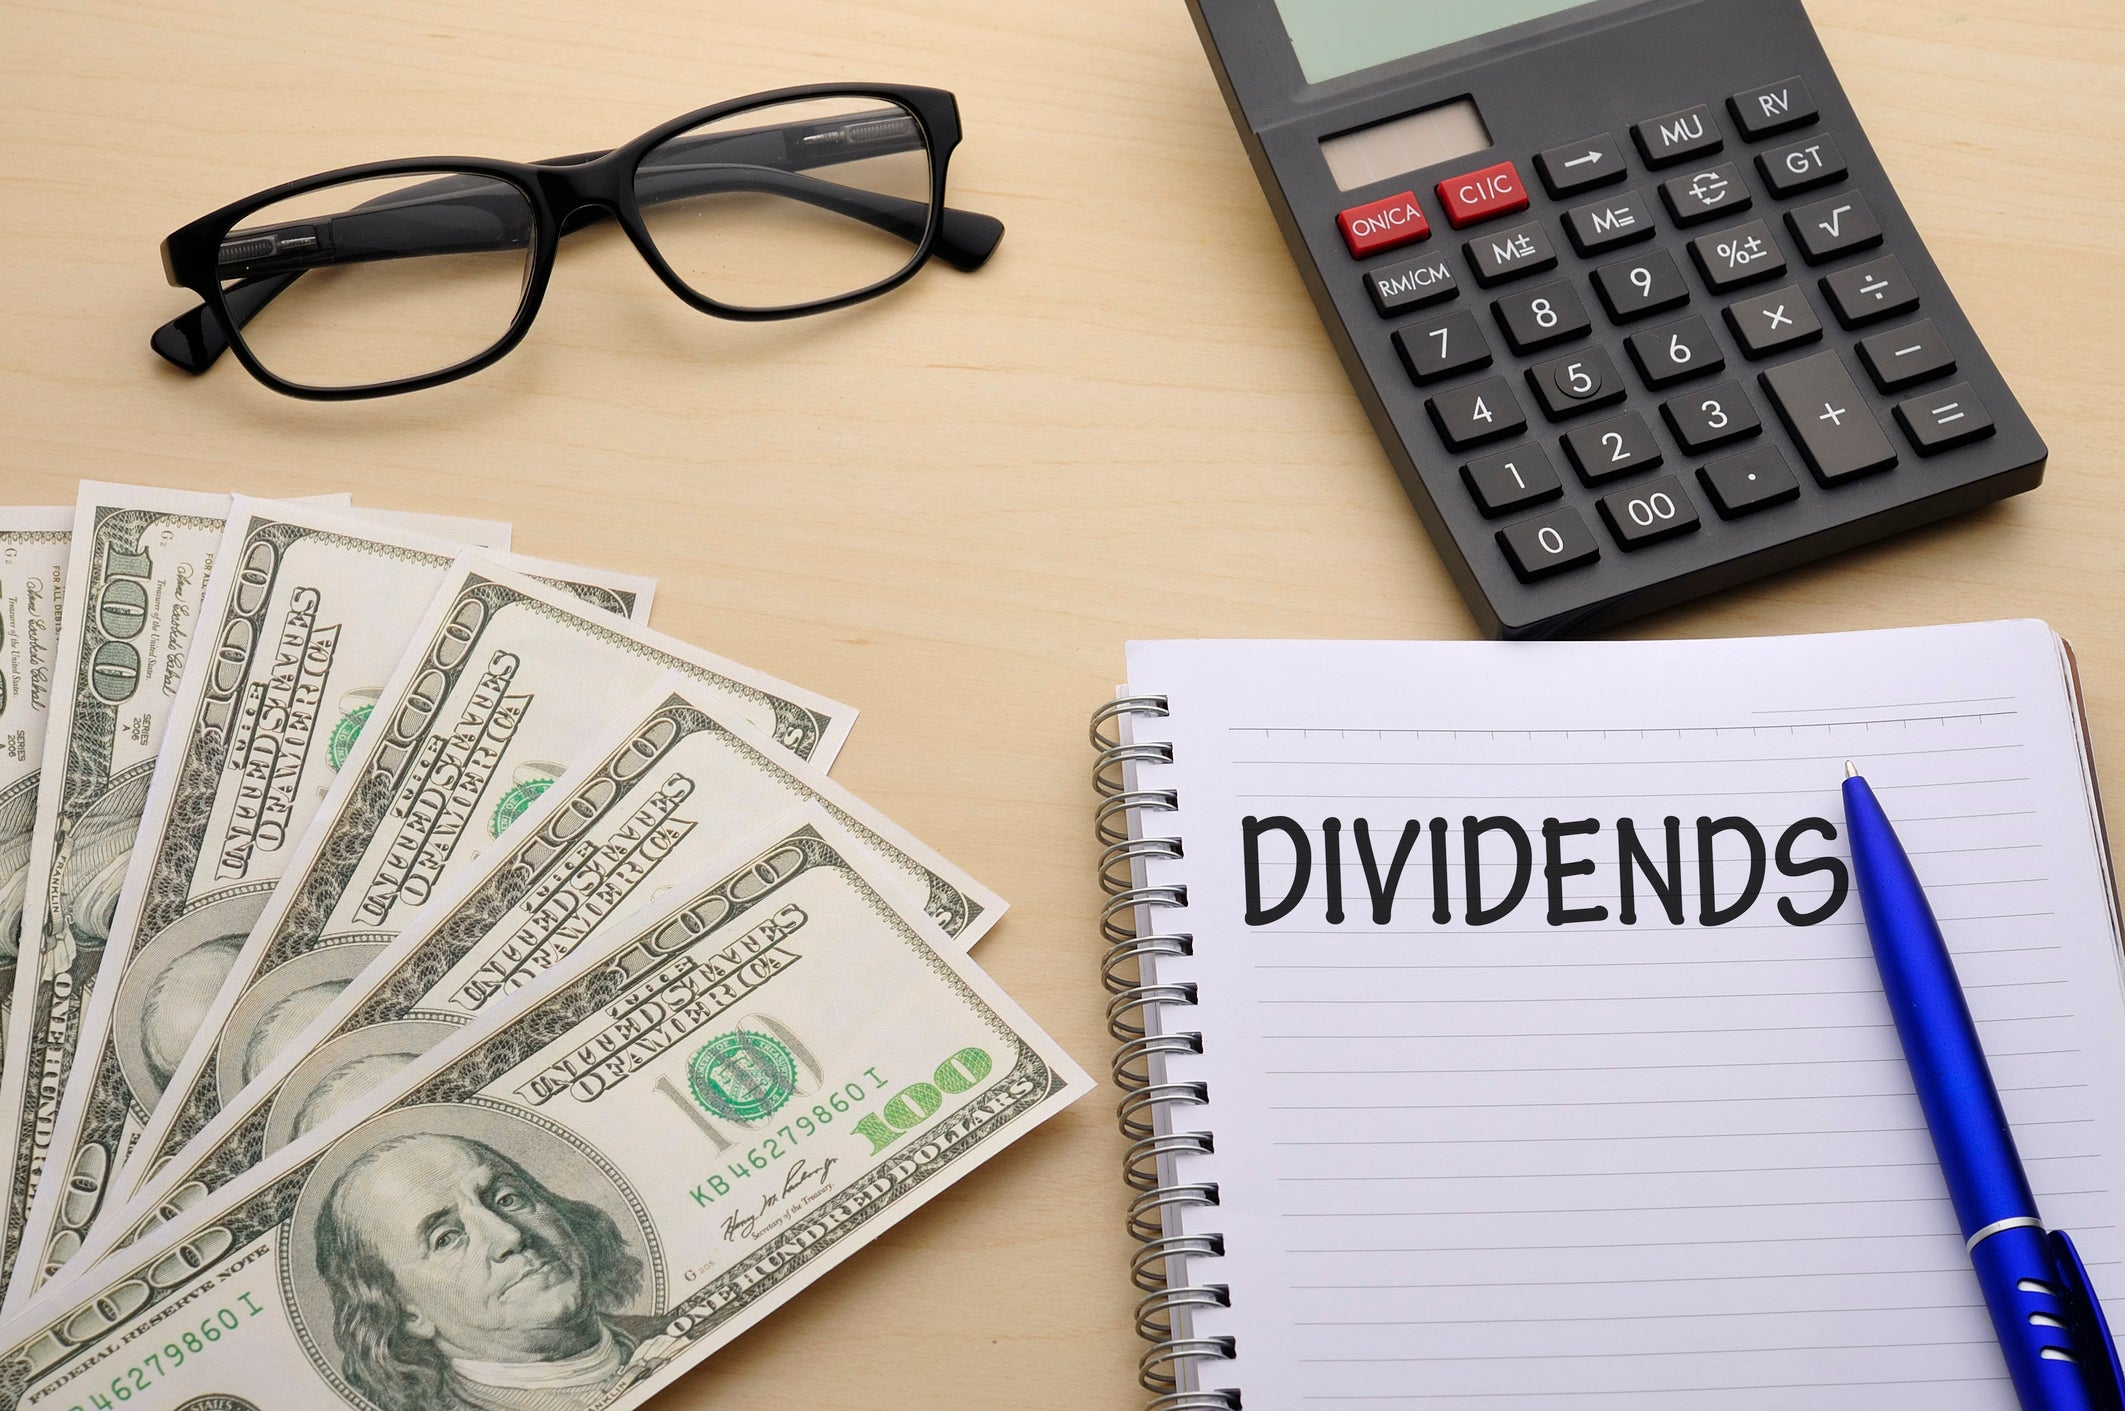 Like Dividends? These 3 High-Yield Stocks Have Kept Shareholders Flush for More Than a Century